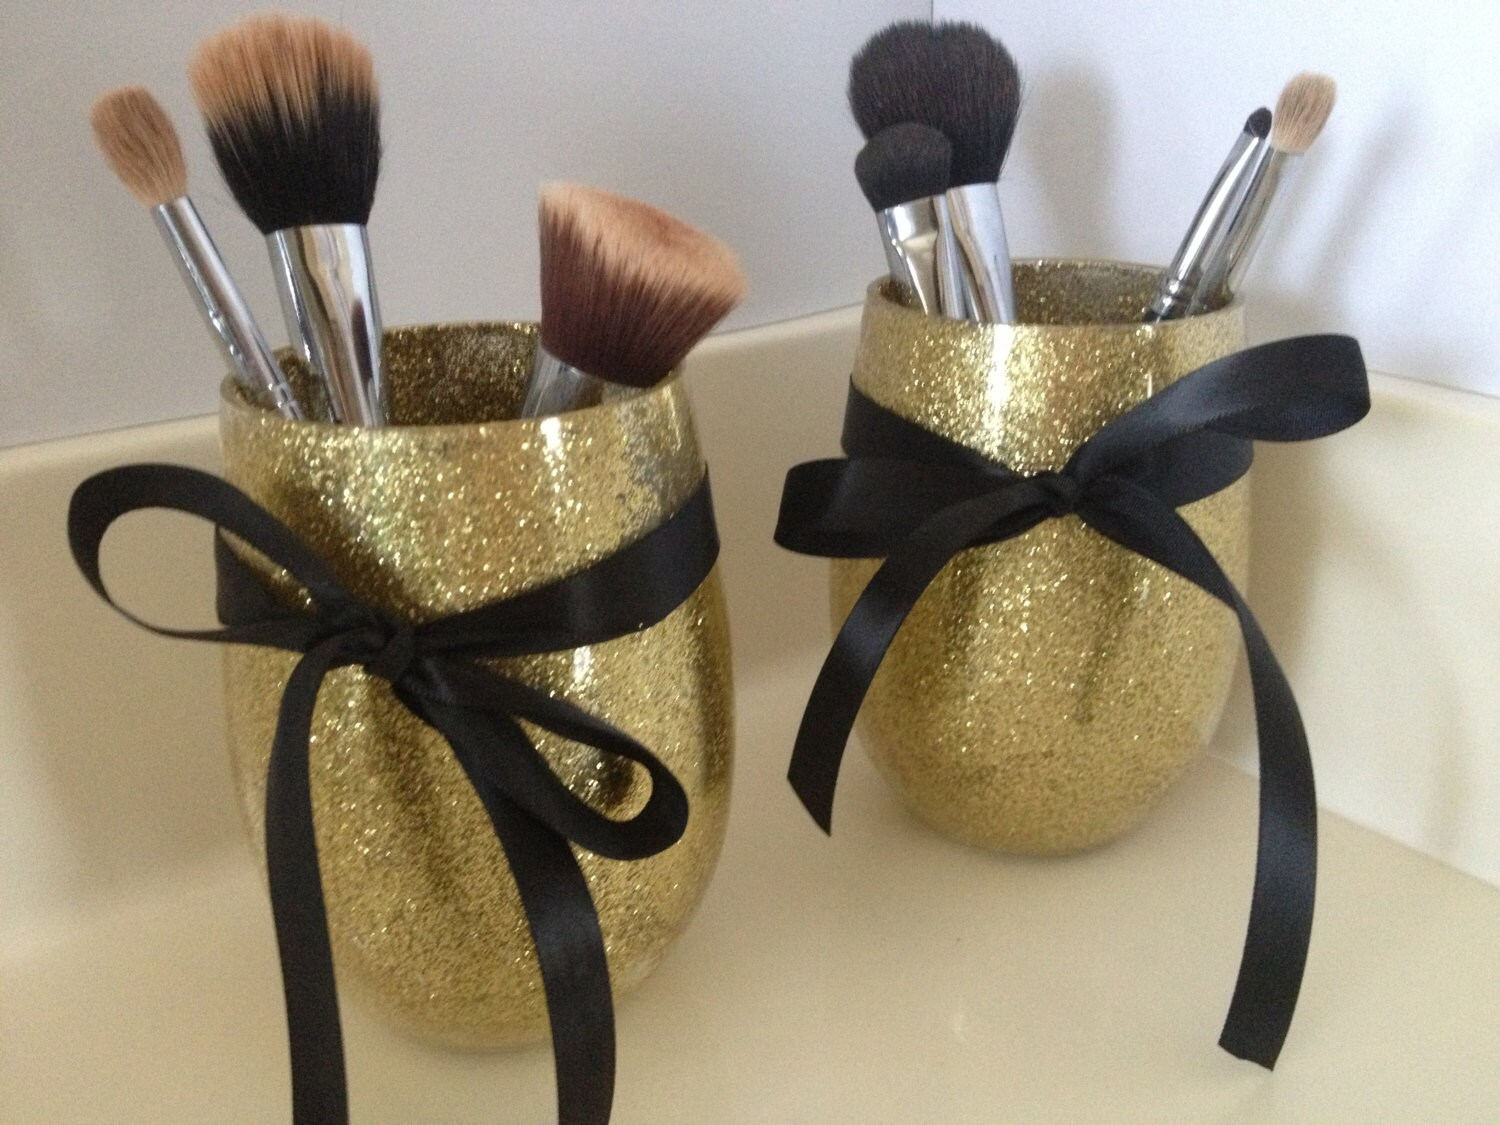 acrylic glittery makeup brush holder by misscraftycathy on etsy. Black Bedroom Furniture Sets. Home Design Ideas